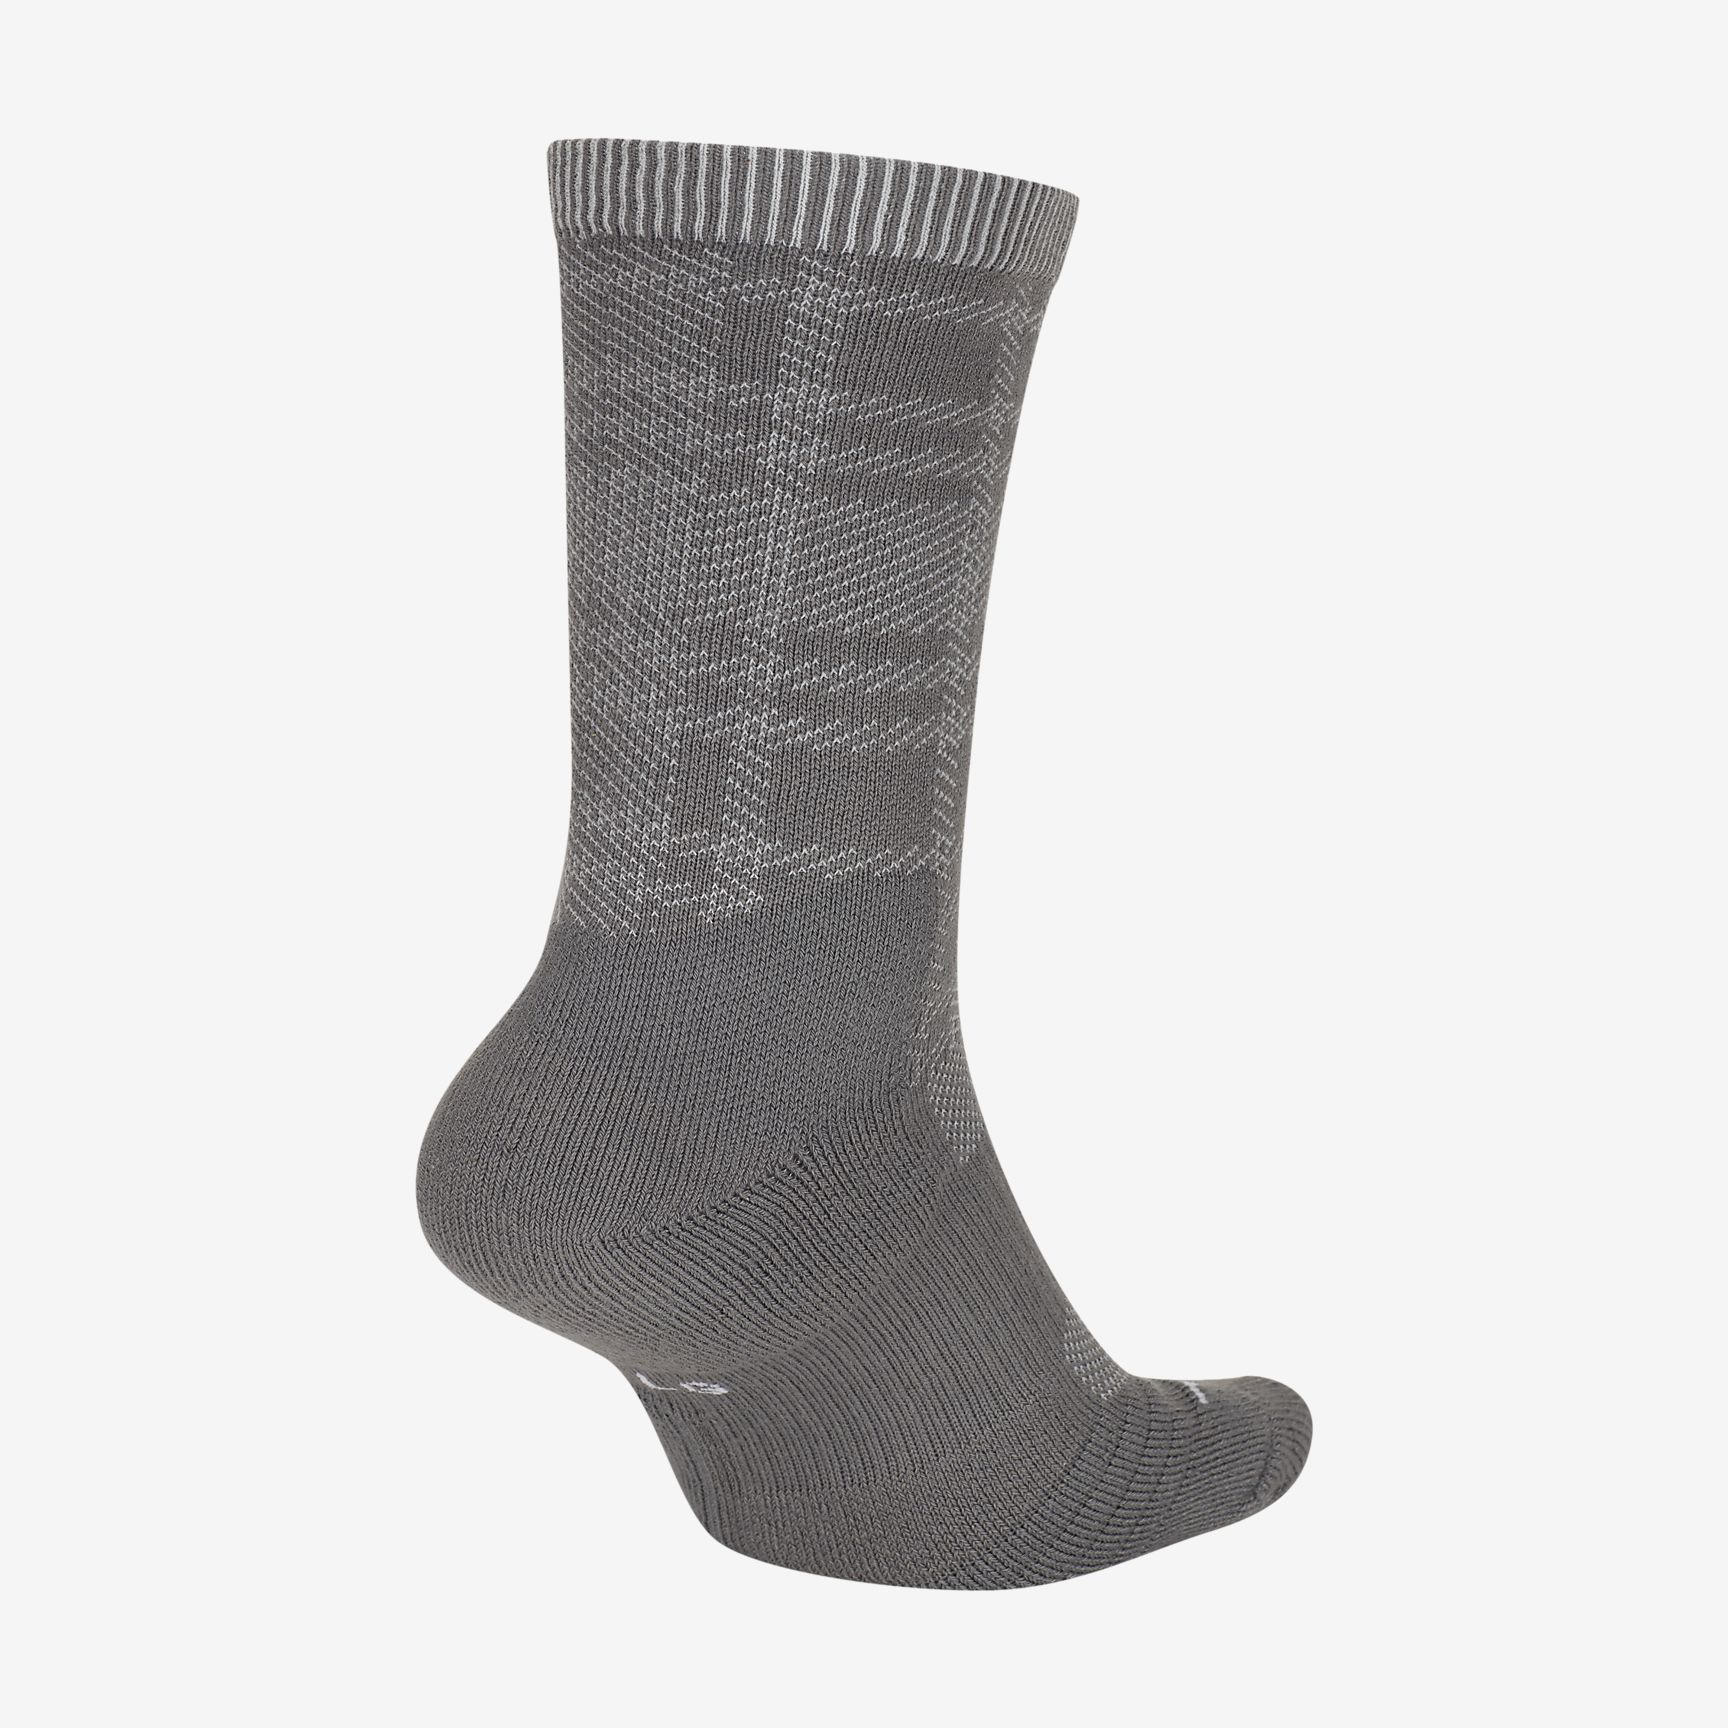 Nike Kyrie Elite Socks - Smoke Grey/Photon Dust/White SP-Footwear-Mens Nike